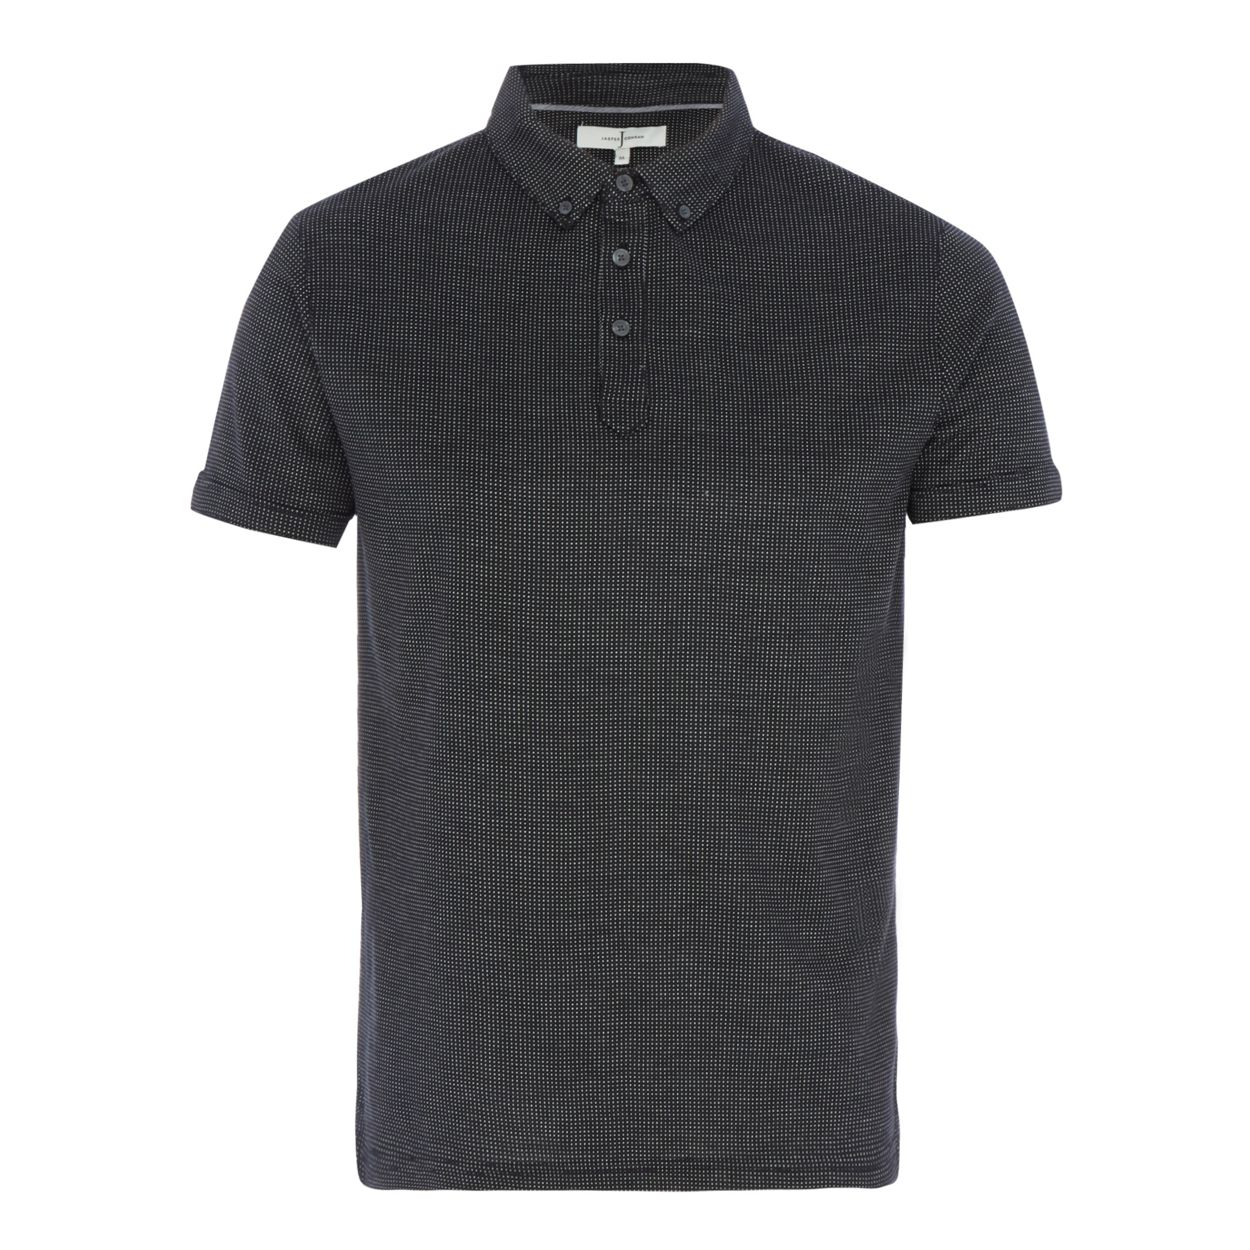 J by Jasper Conran Black birdseye polo shirt